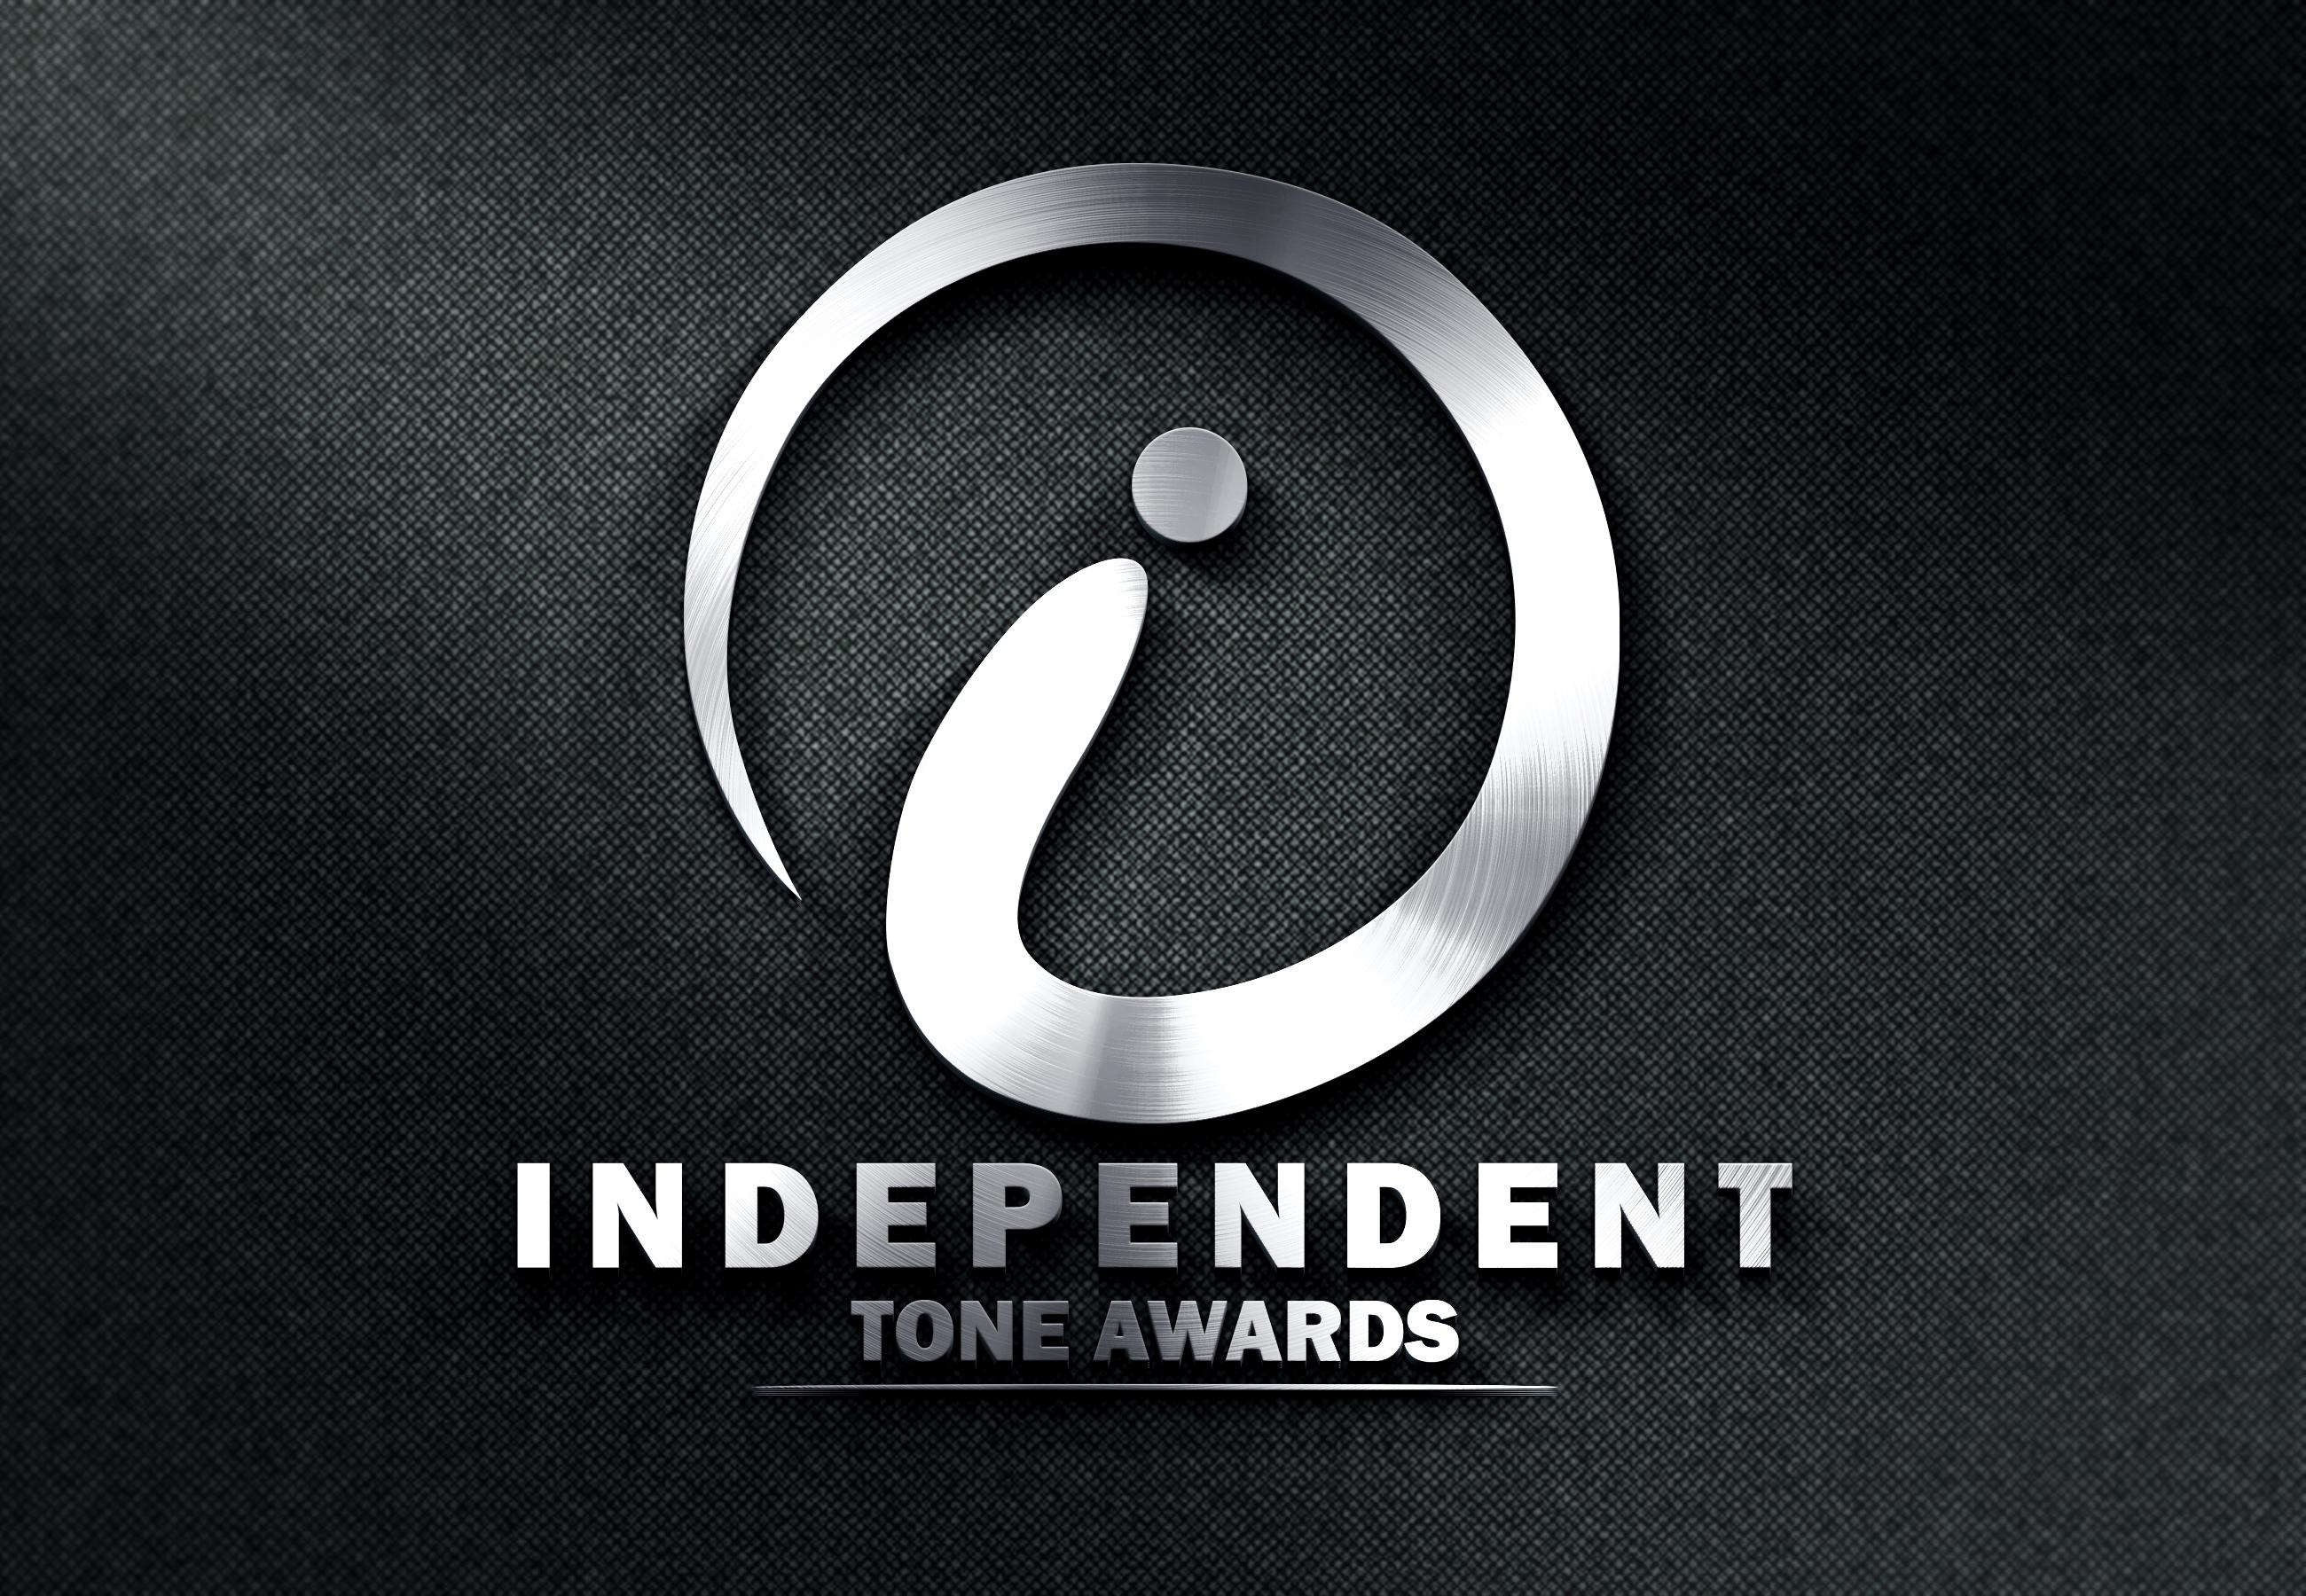 Independent Tone Awards Ceremony  2017 | Mount Pleasant, SC | USS YORKTOWN | December 10, 2017